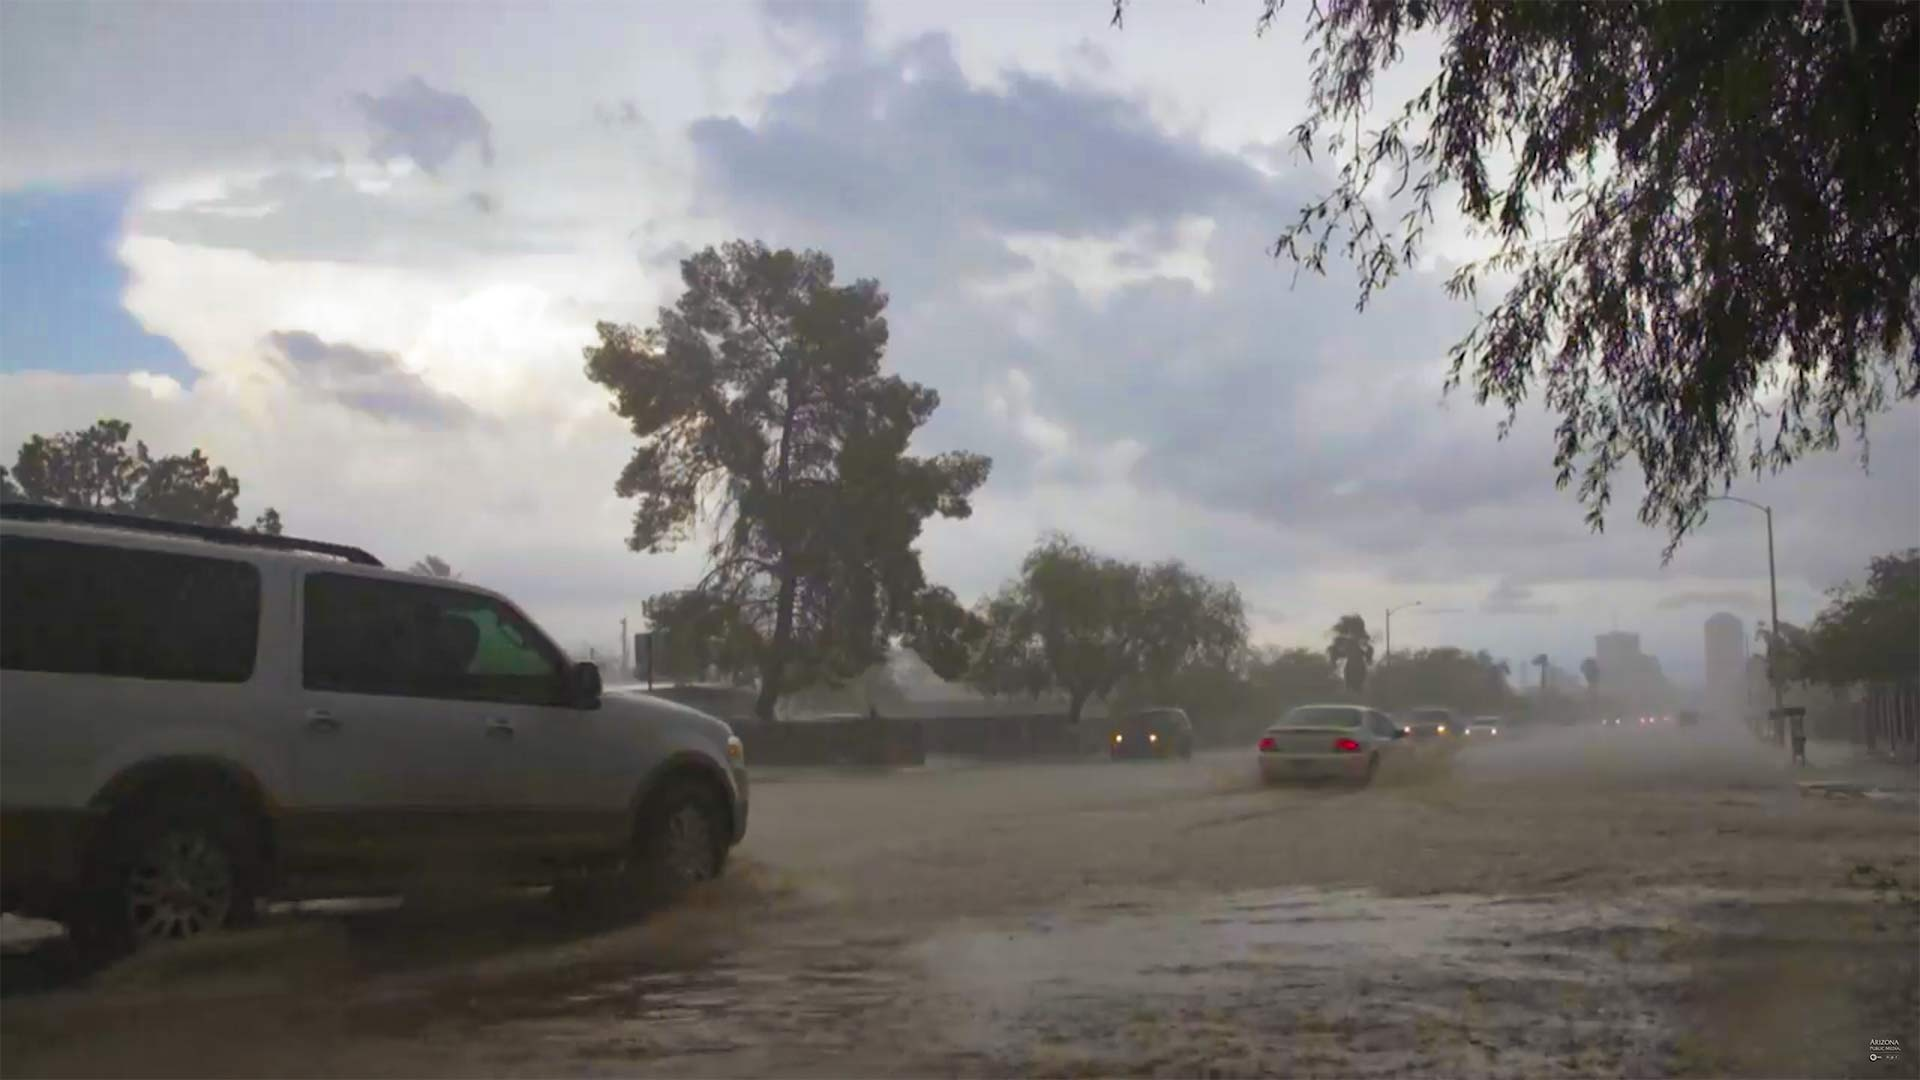 Cars drive through Tucson streets flooding with monsoon rains.